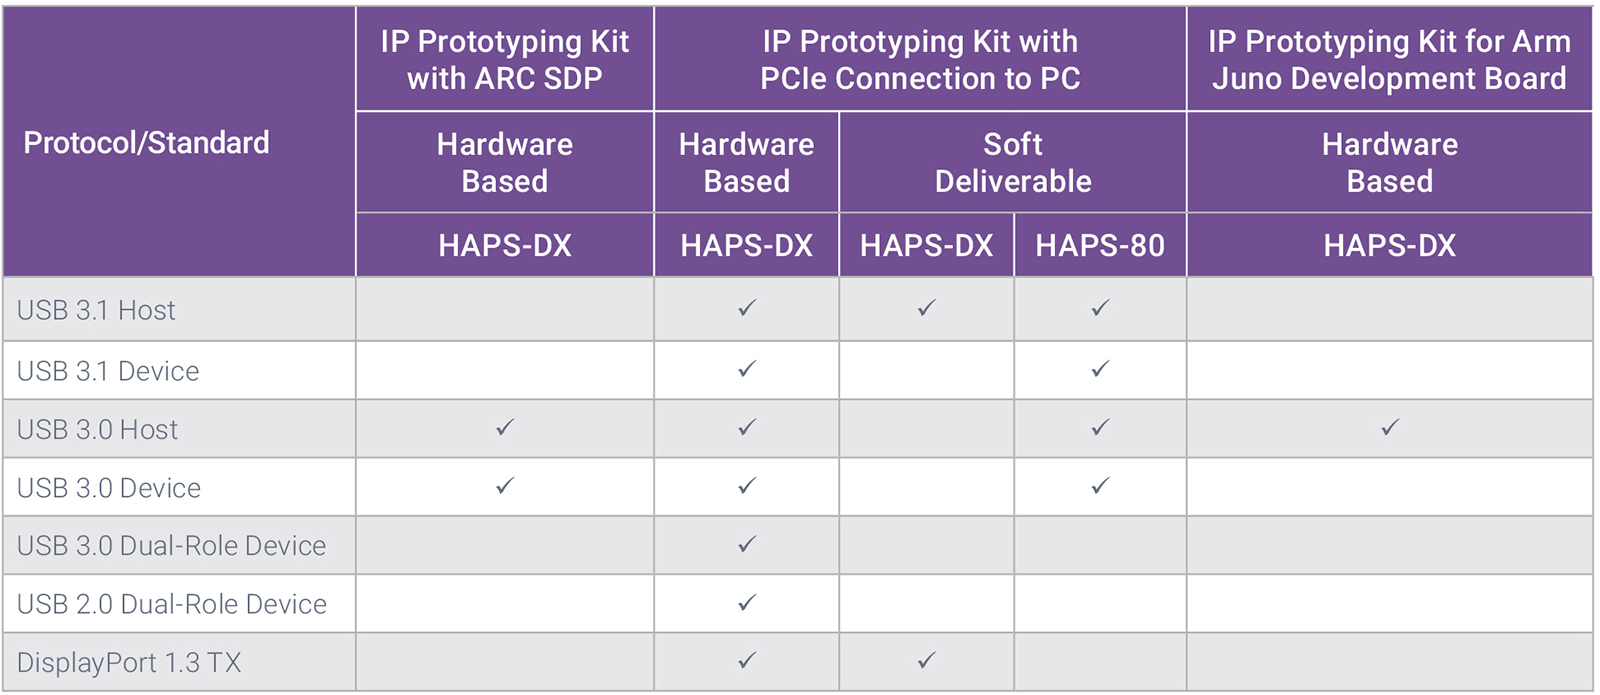 IP Prototyping Kits for USB